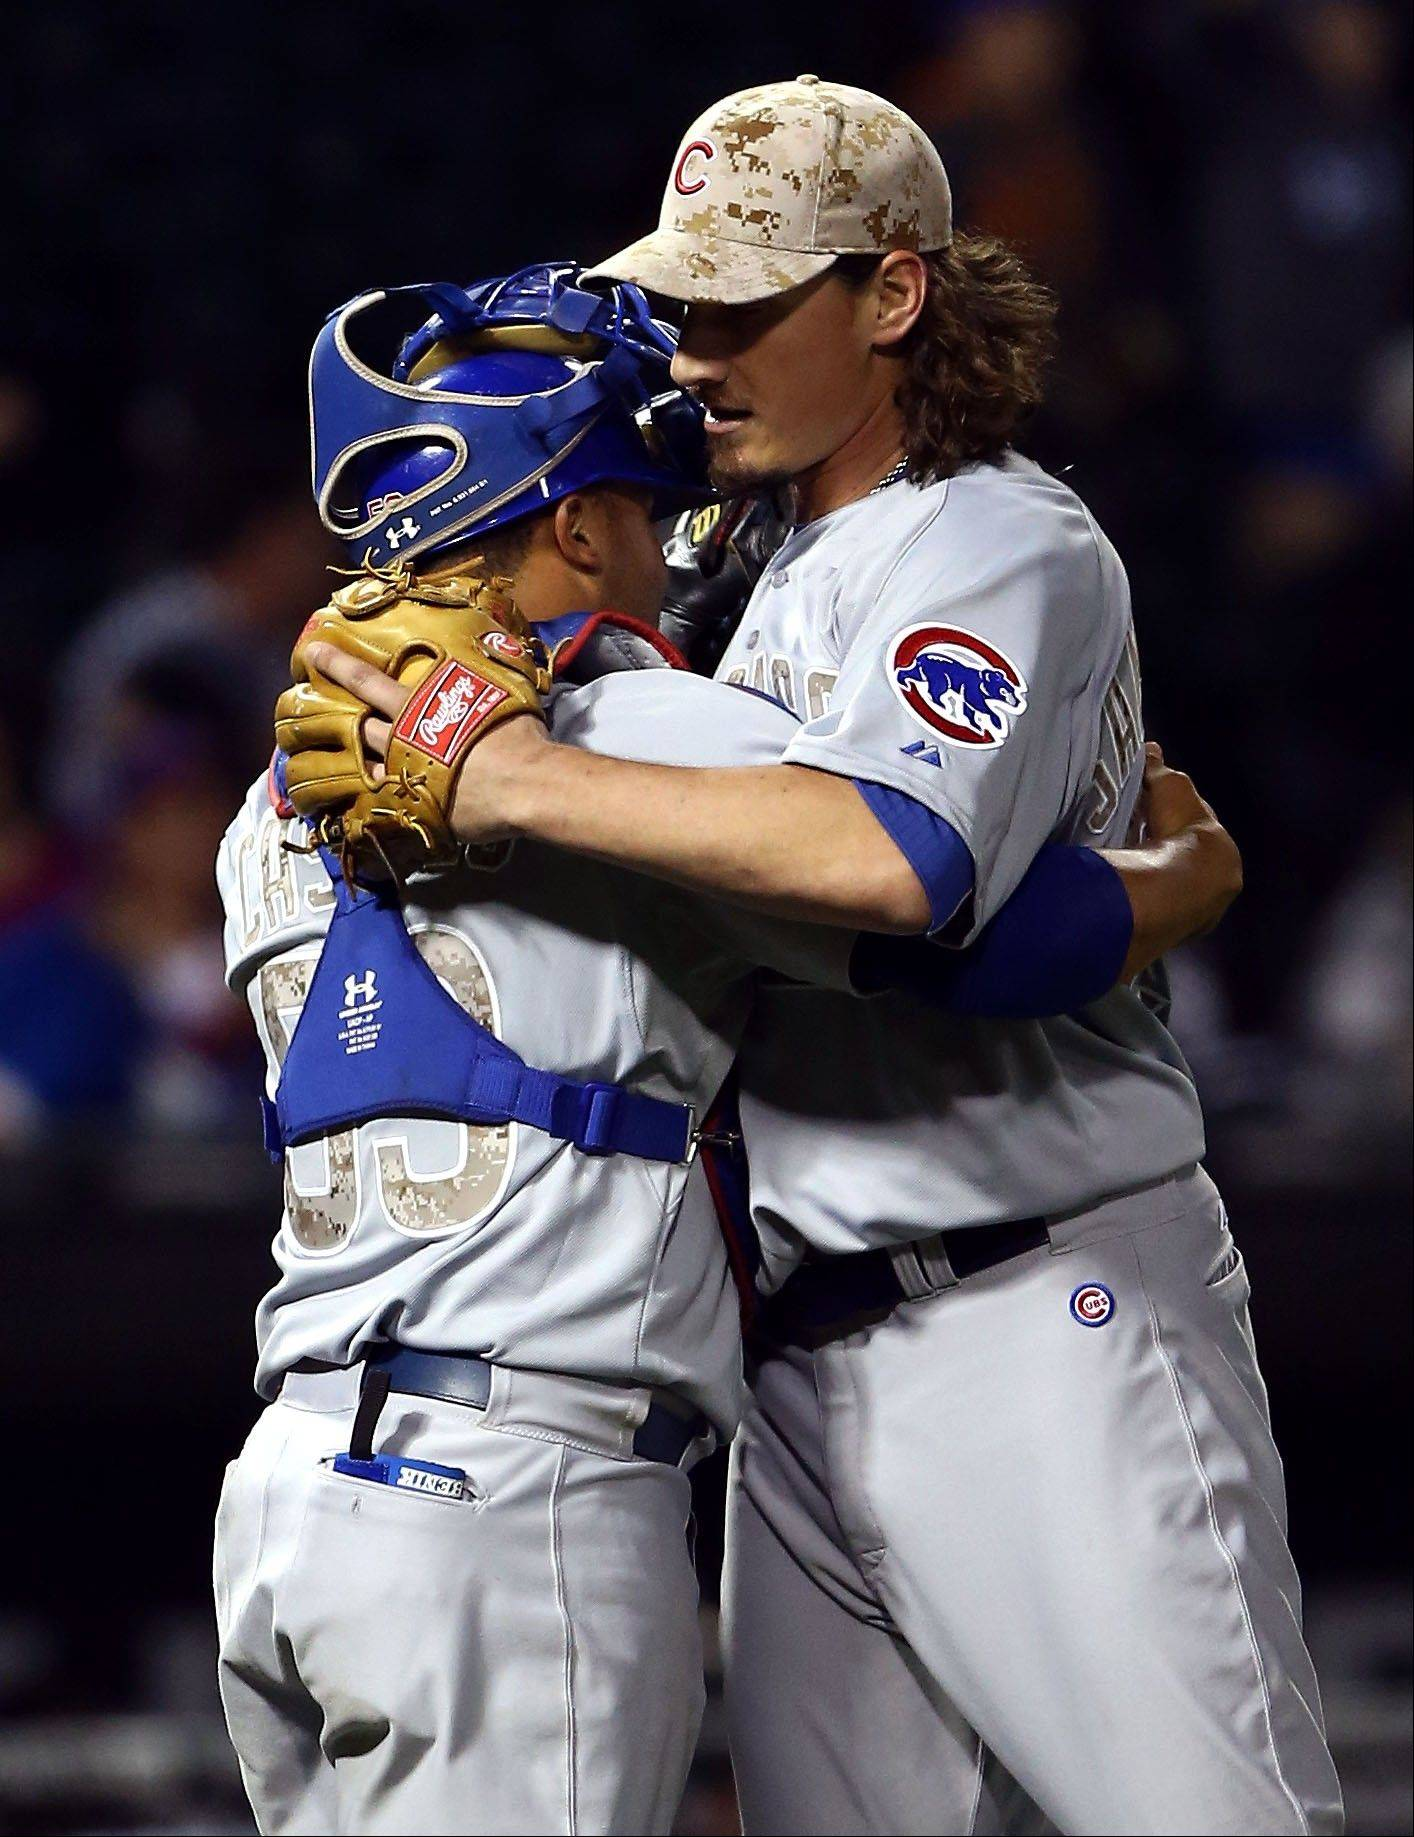 Cubs' Samardzija comes up all aces in shutting out White Sox